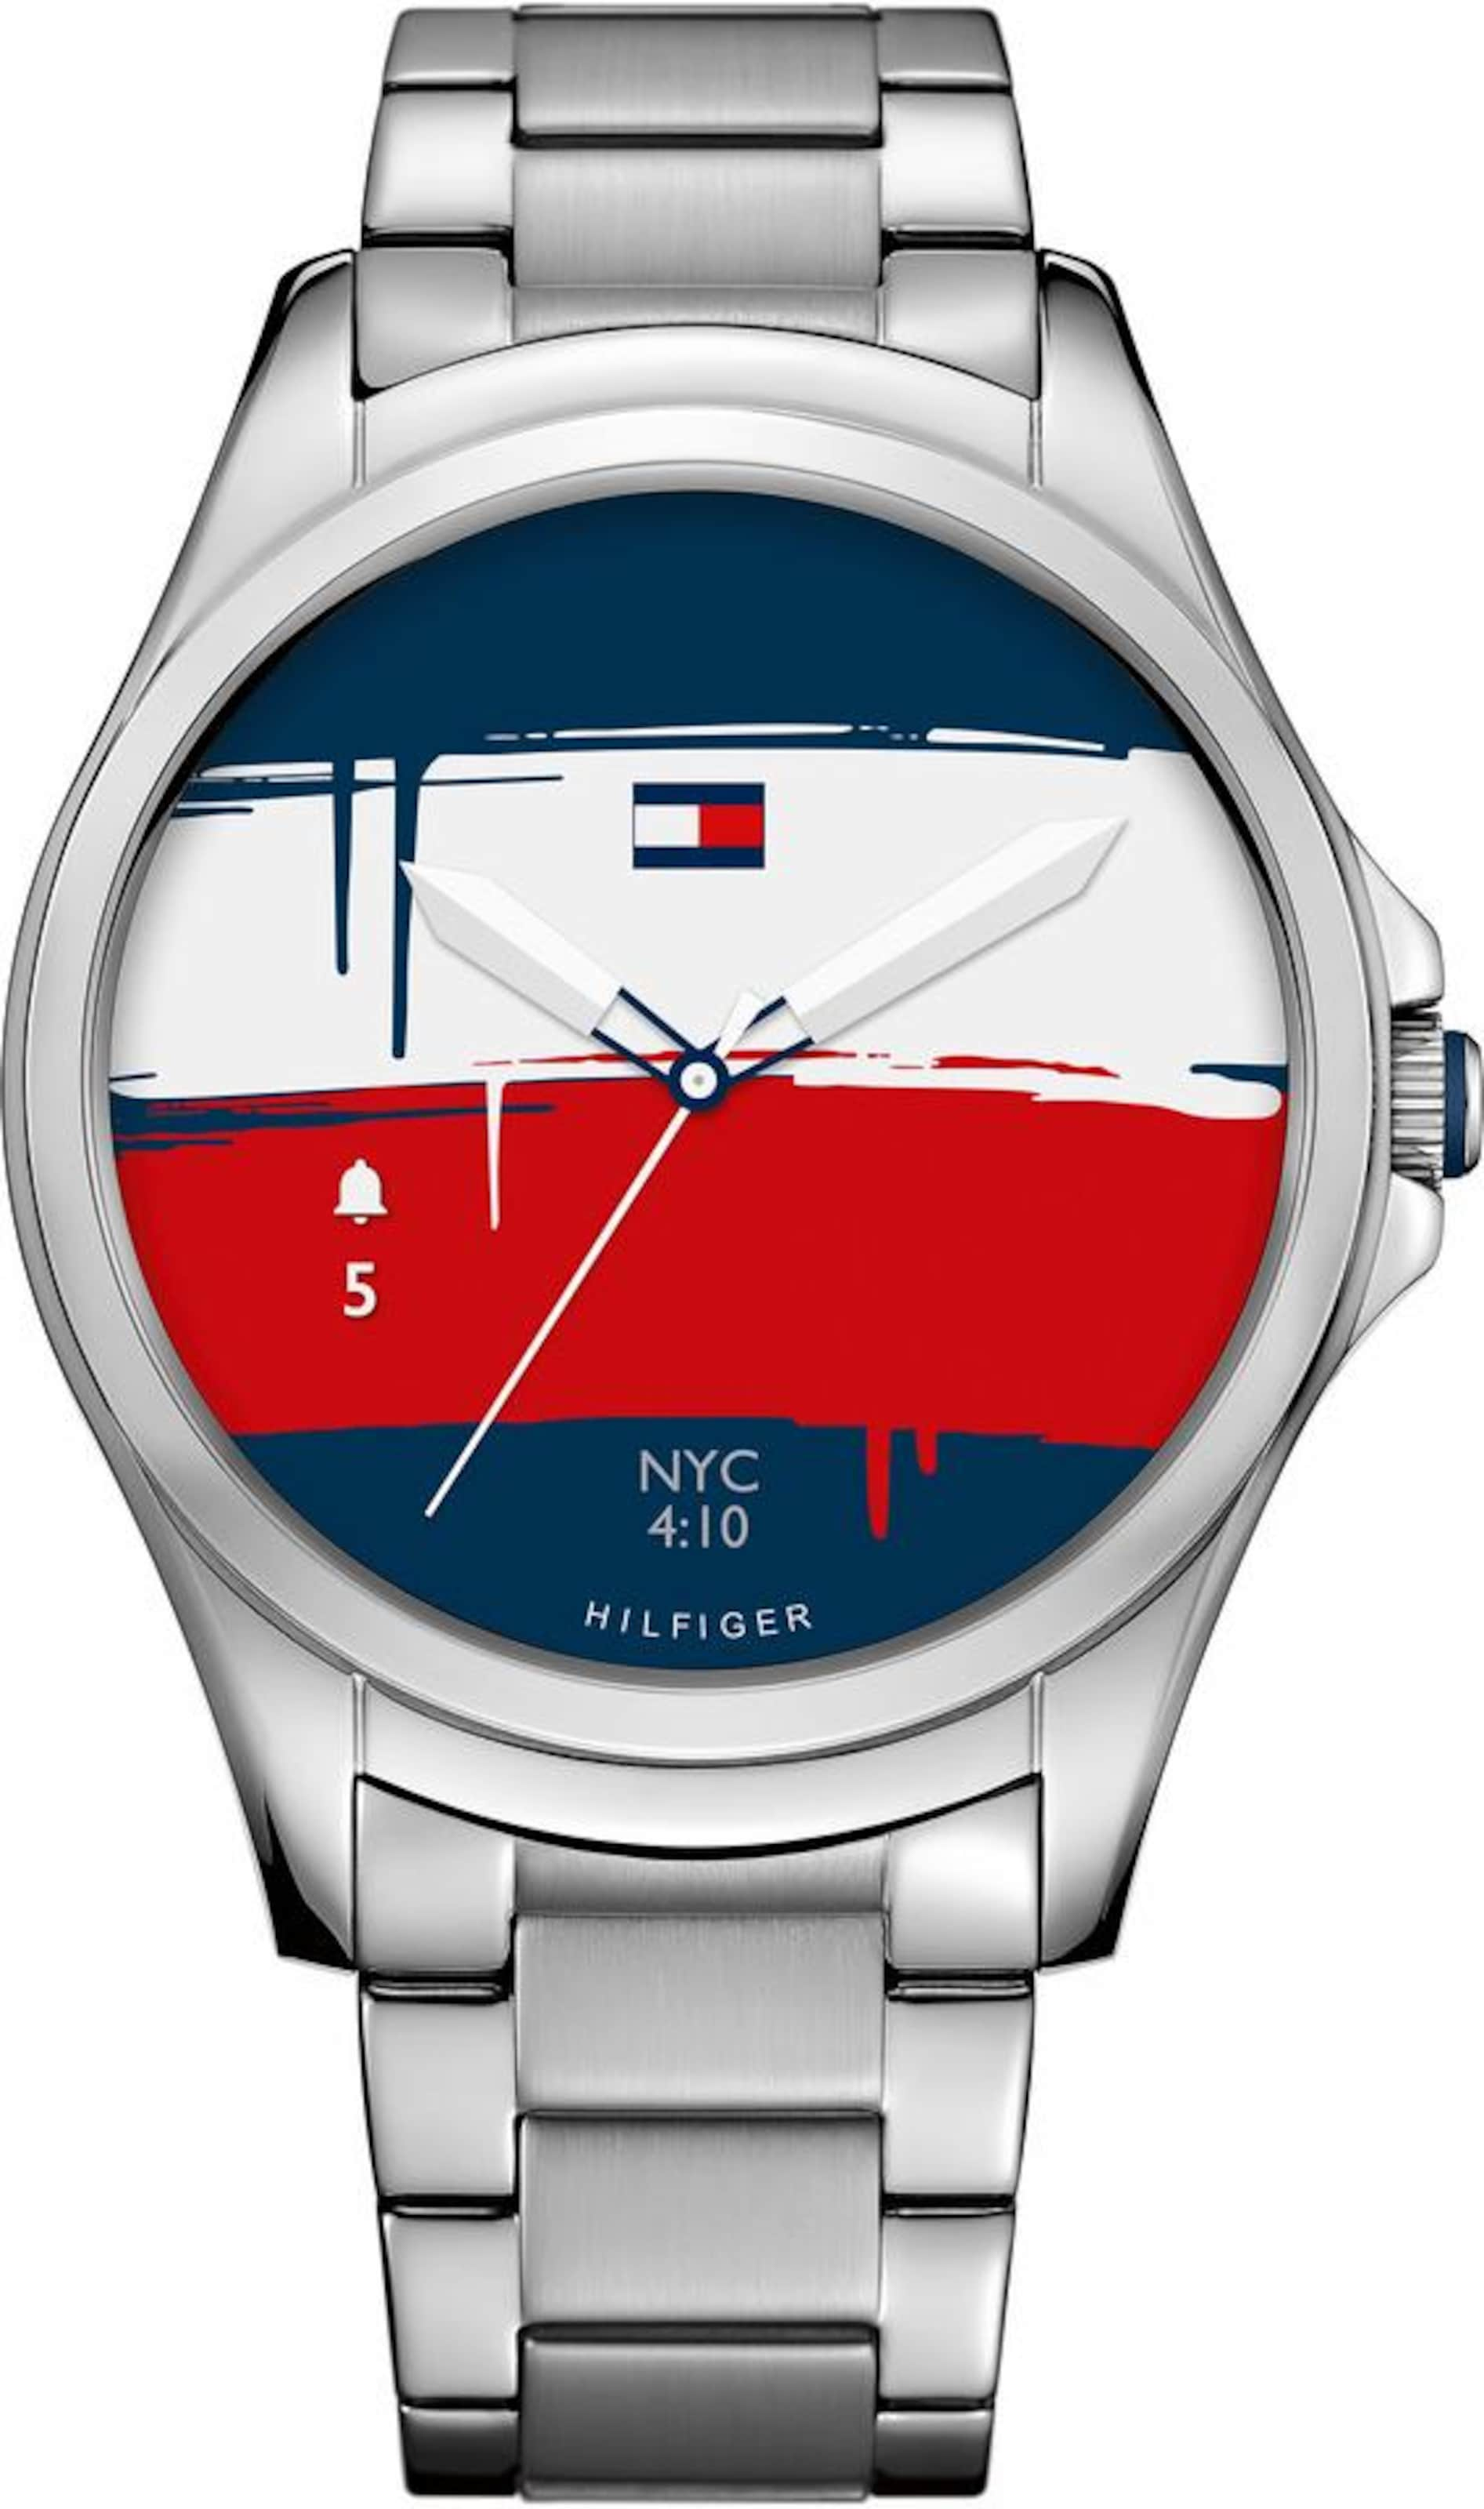 TOMMY HILFIGER Smartwatch - Android Wear 'TH 24/7 YOU, 1791405 '